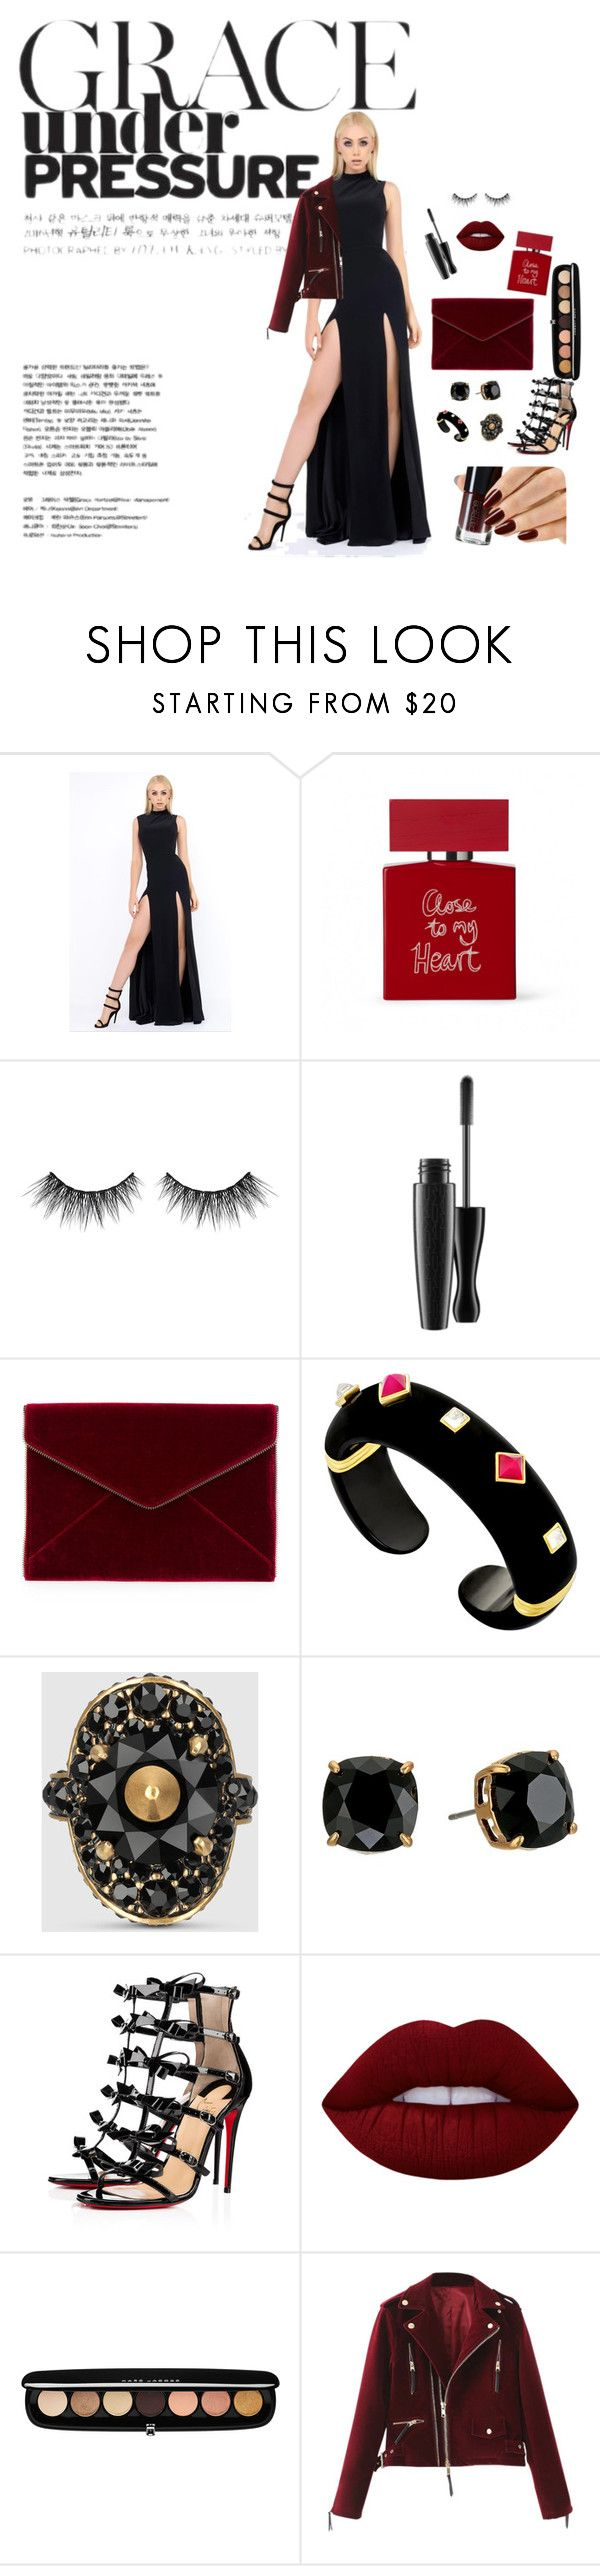 Fine like Wine! by newyorkdressonline on Polyvore featuring Mac Duggal, Christian Louboutin, Rebecca Minkoff, Tory Burch, Margot McKinney, Gucci, Marc Jacobs, Lime Crime, Huda Beauty and Bella Freud